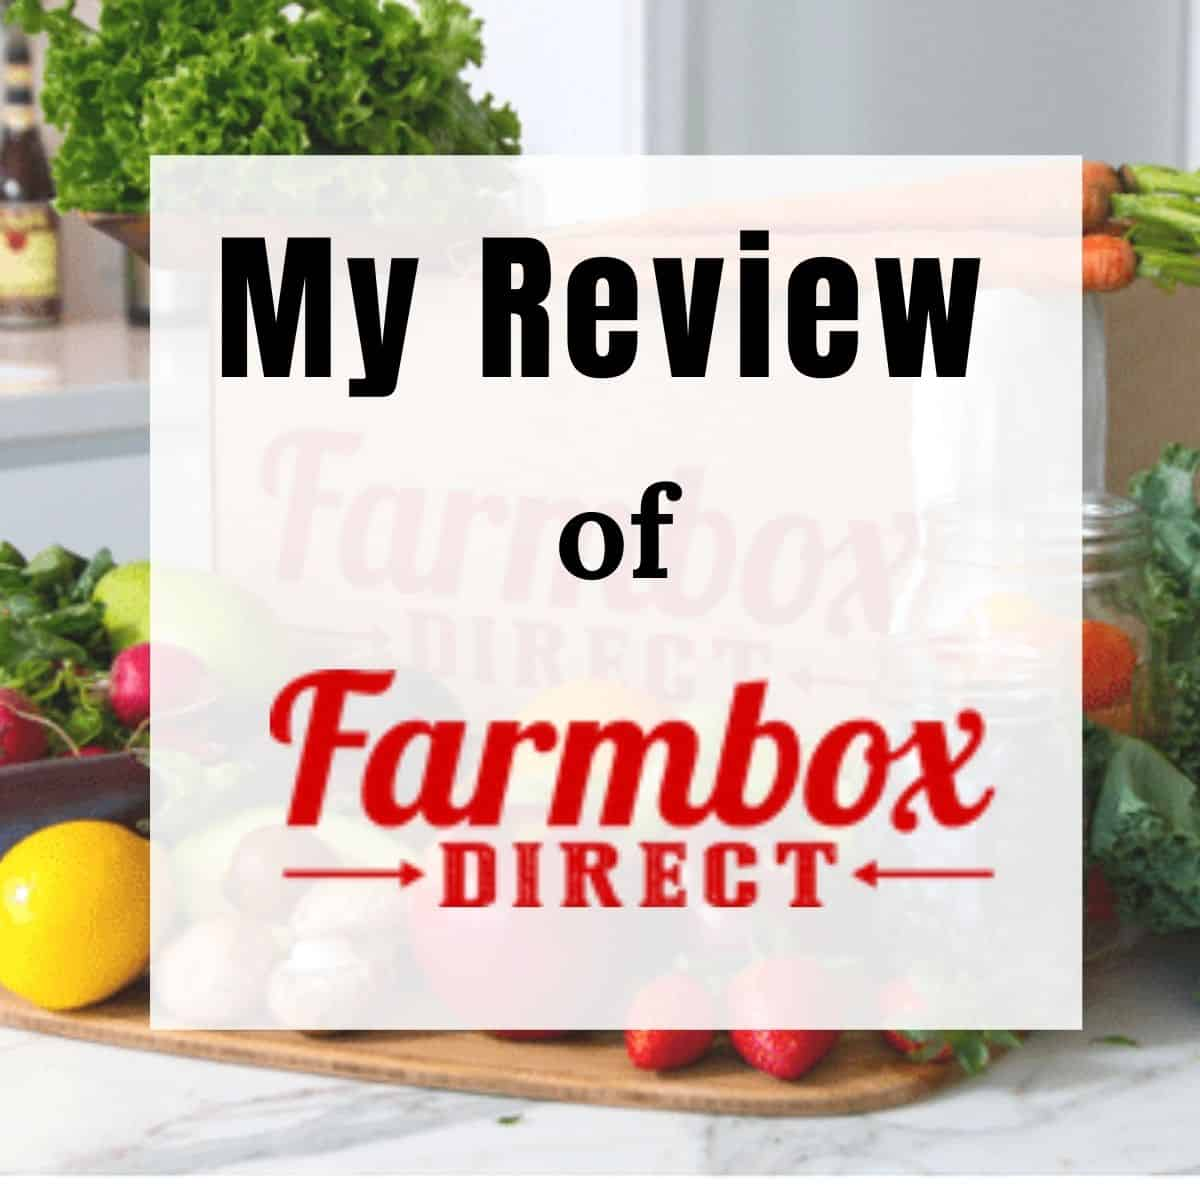 farmbox direct package with fresh produce om table.